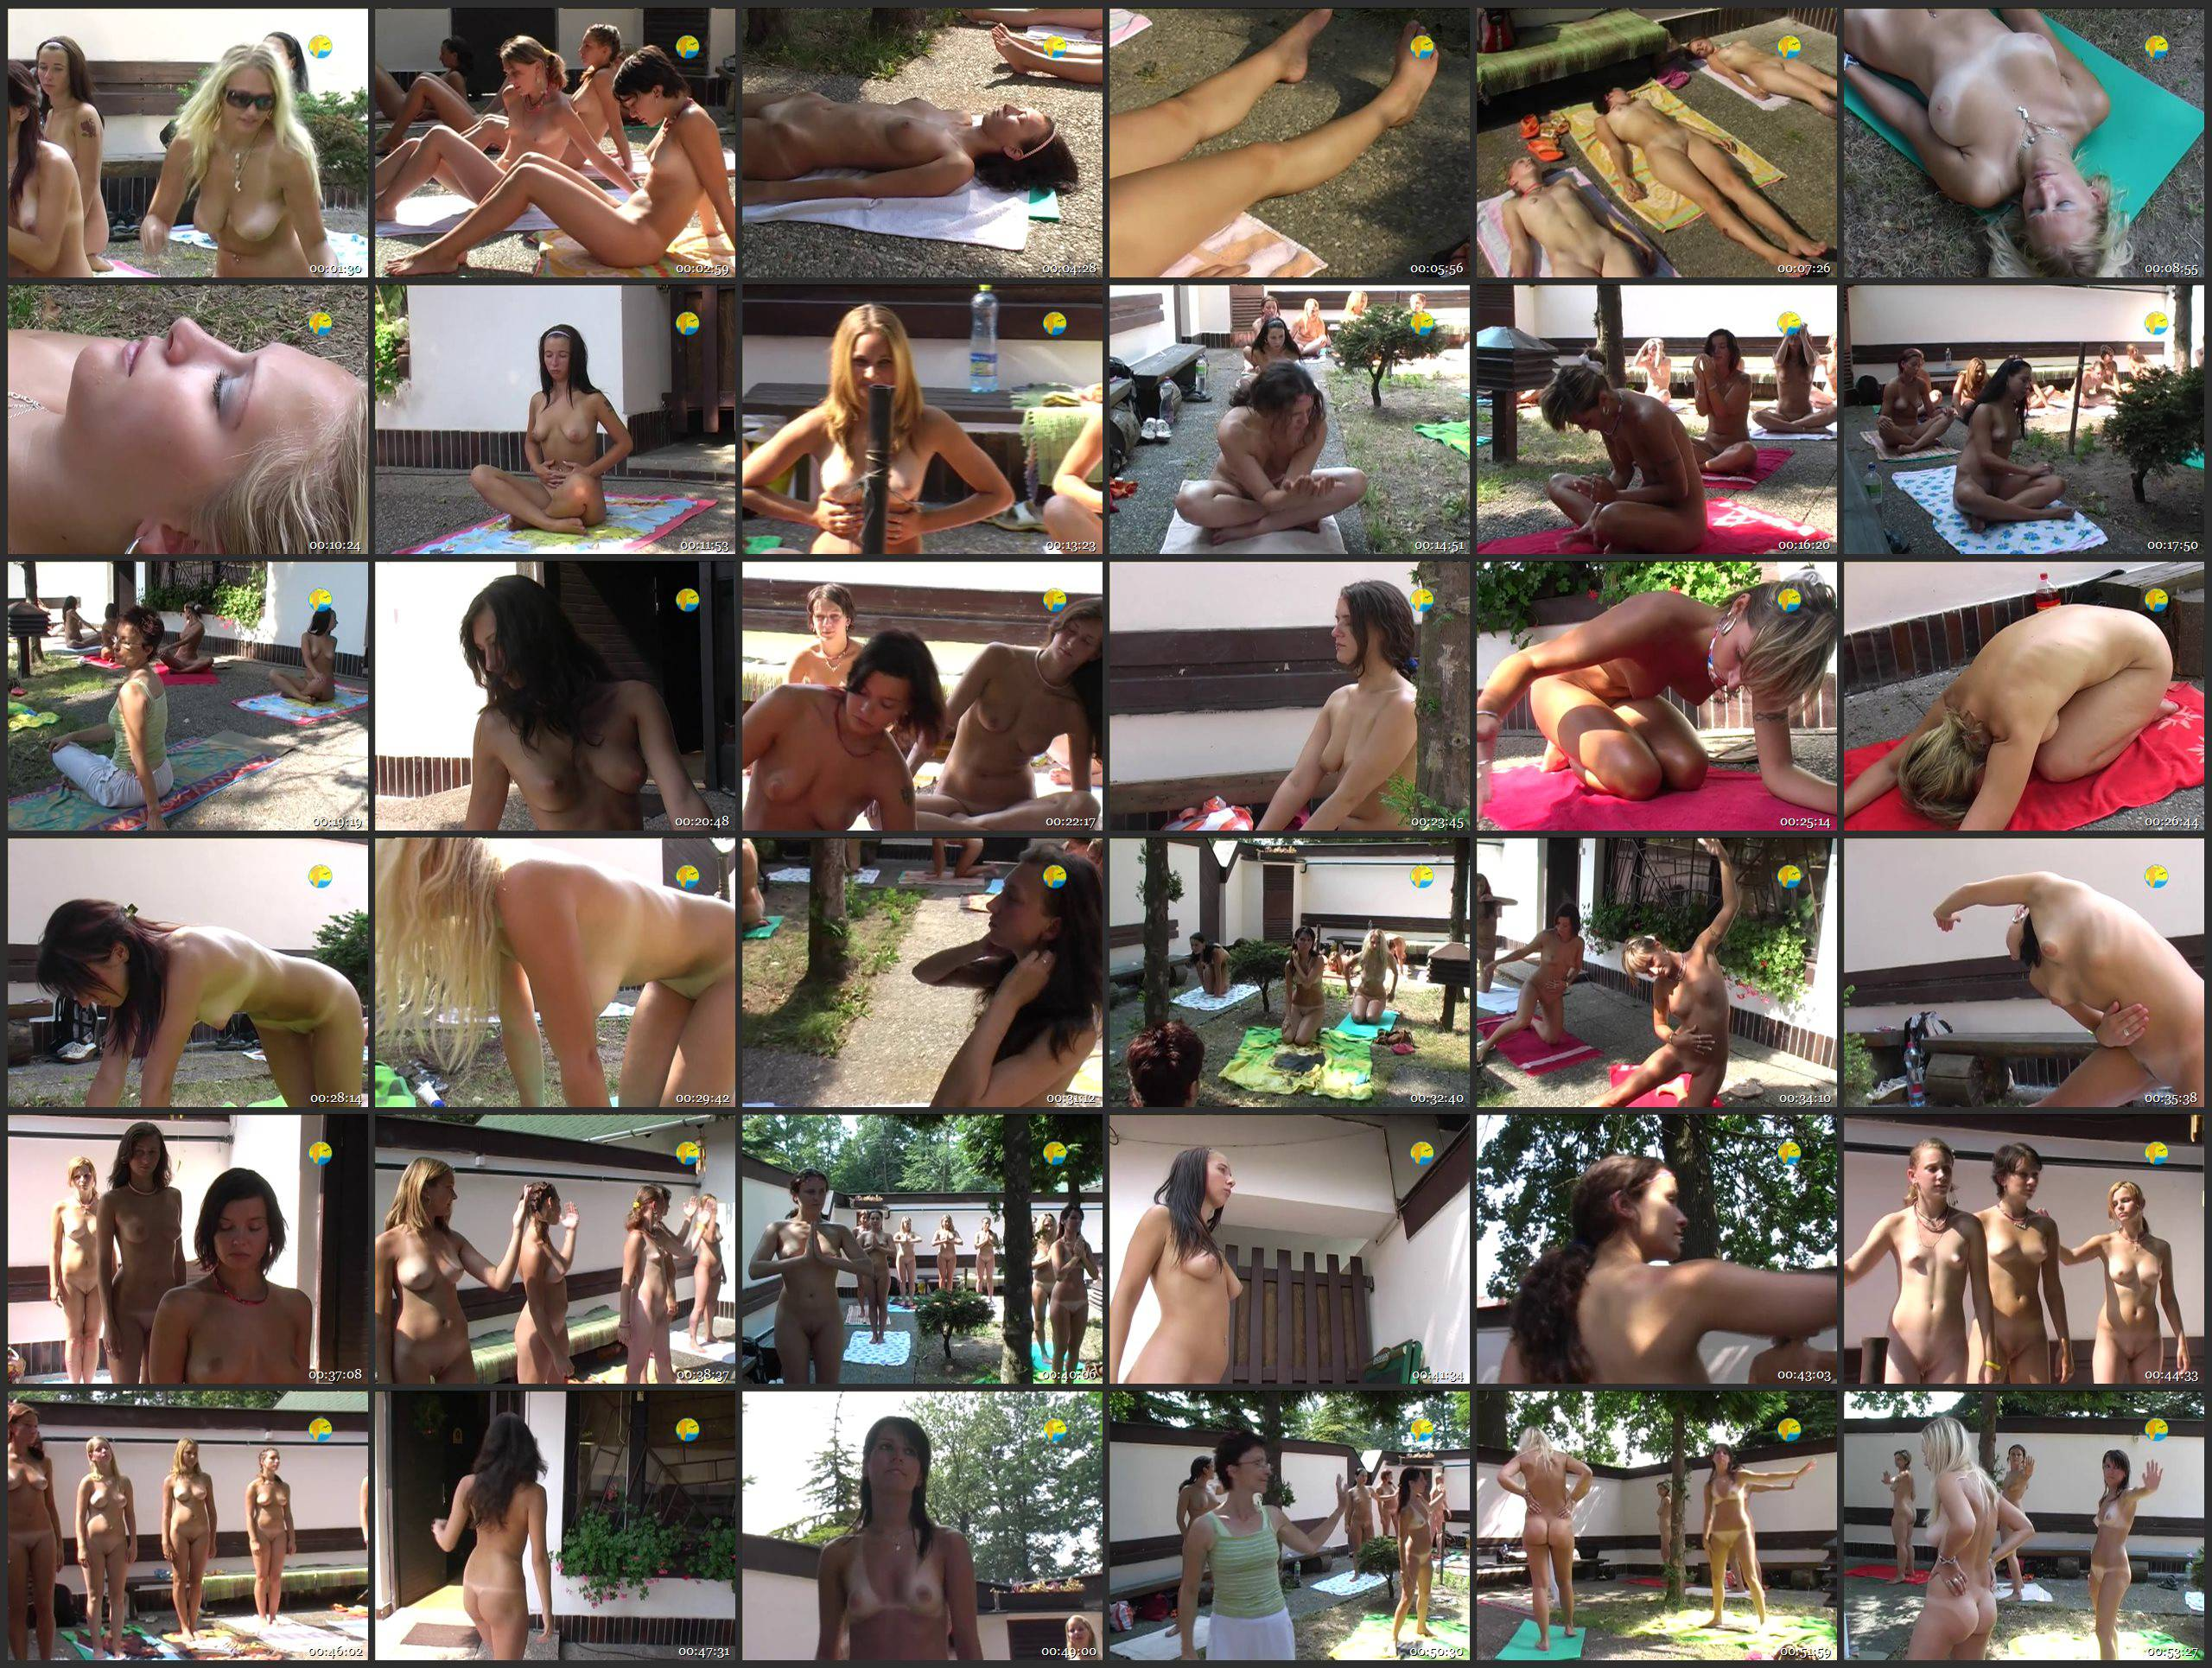 Naturist Freedom-Yoga and the Girls - Thumbnails